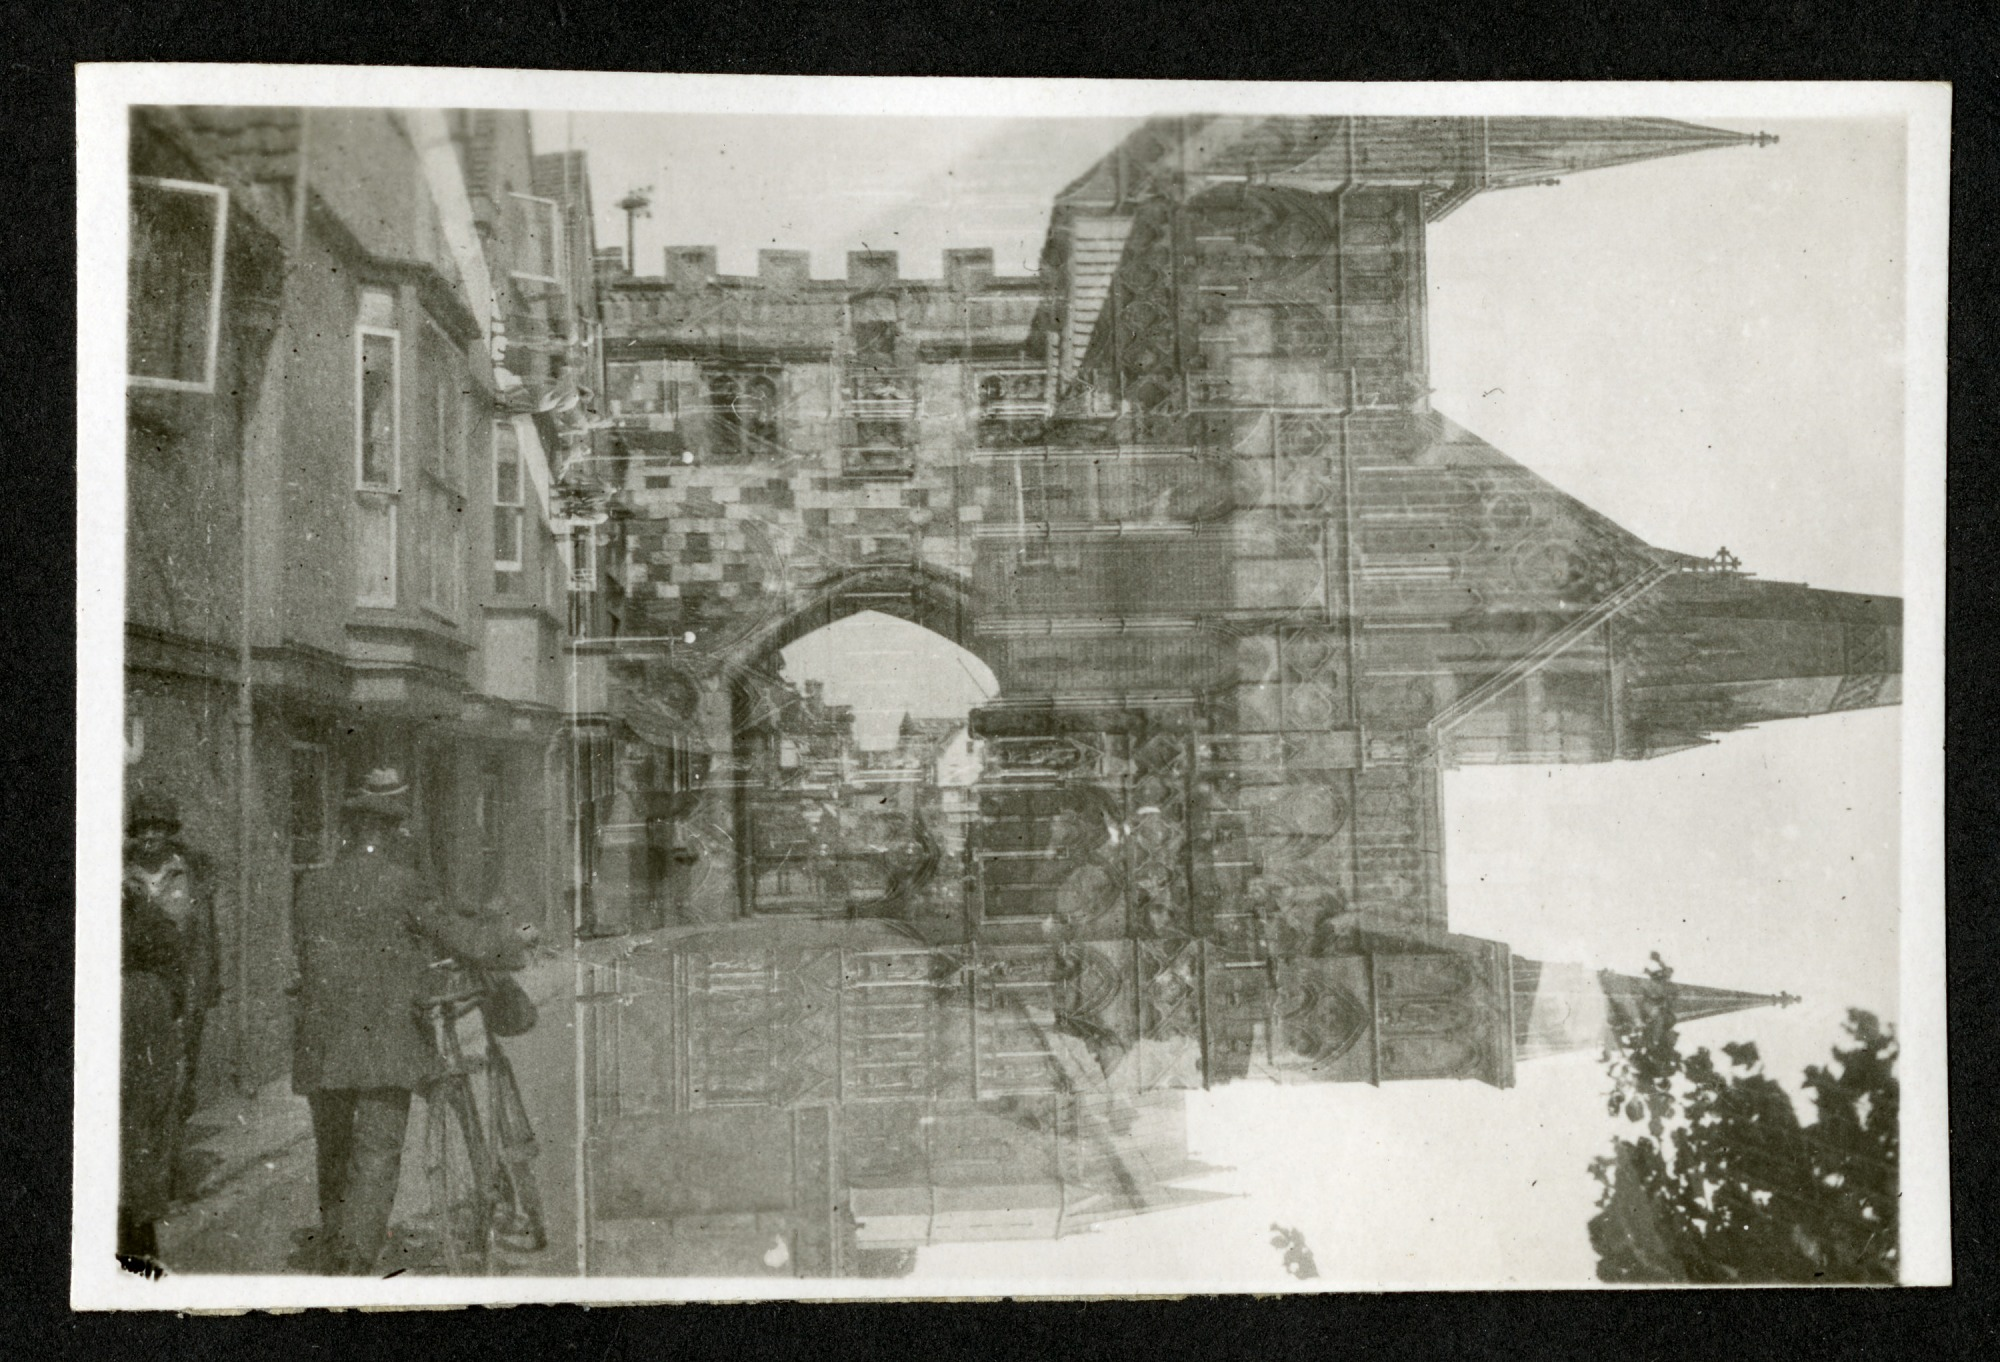 North Gate, at Salisbury, 1925, Smithsonian Institution Archives, SIA RU007091 [SIA2015-003198].